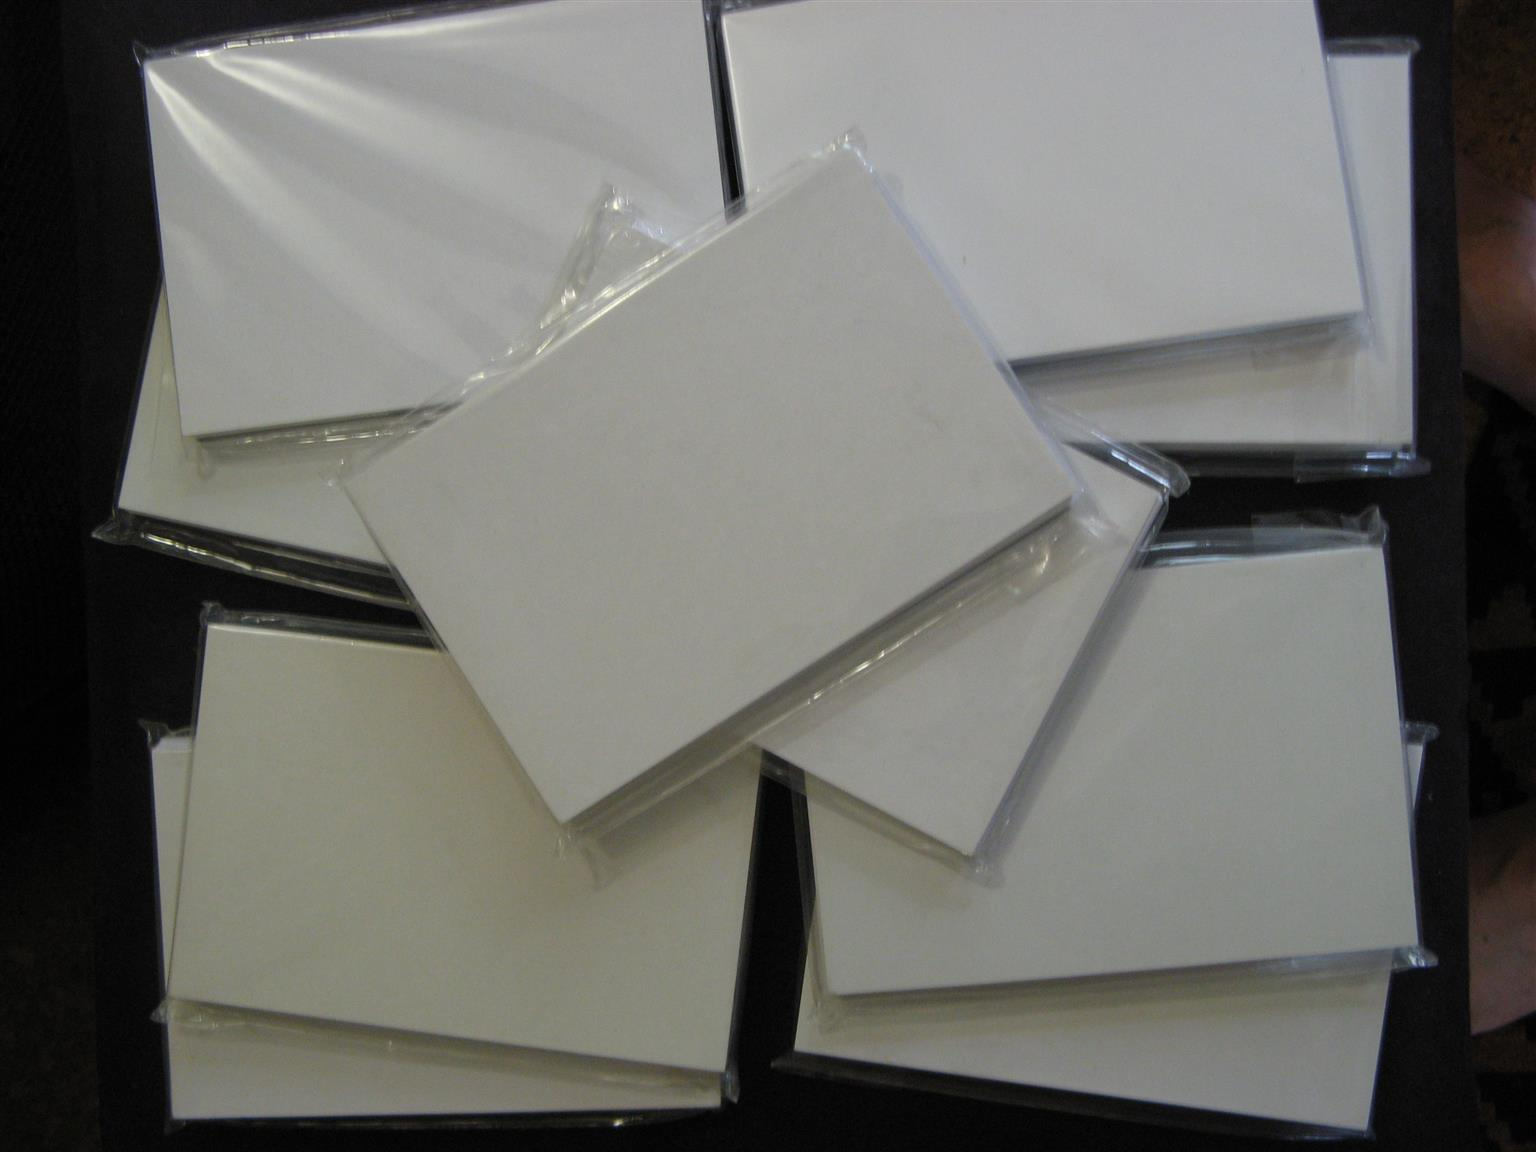 Quality paper stock for home printing - students/school